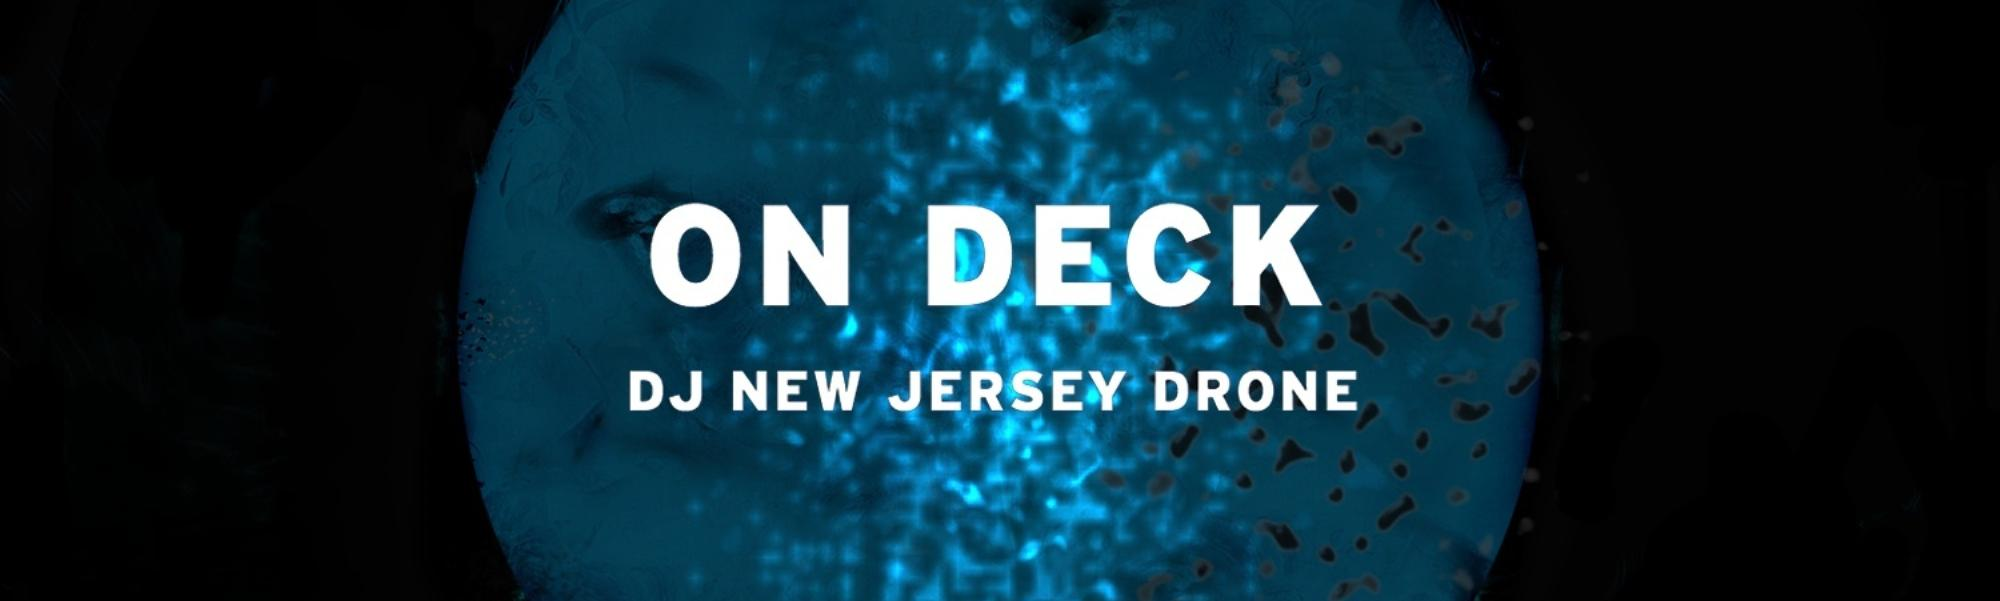 On DECK: DJ New Jersey Drone